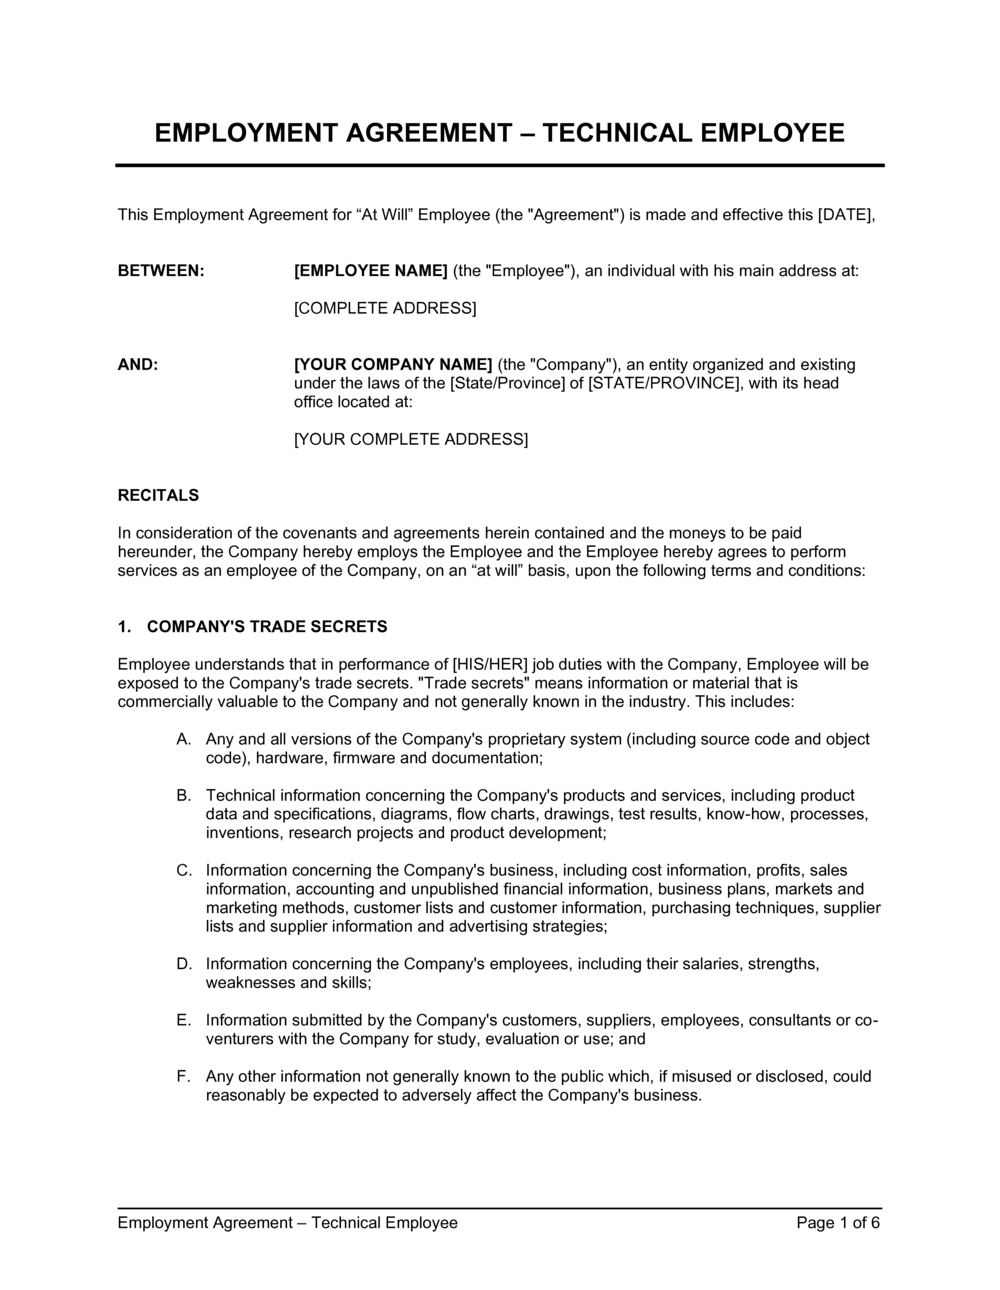 Business-in-a-Box's Employment Agreement For Technical Employee Template